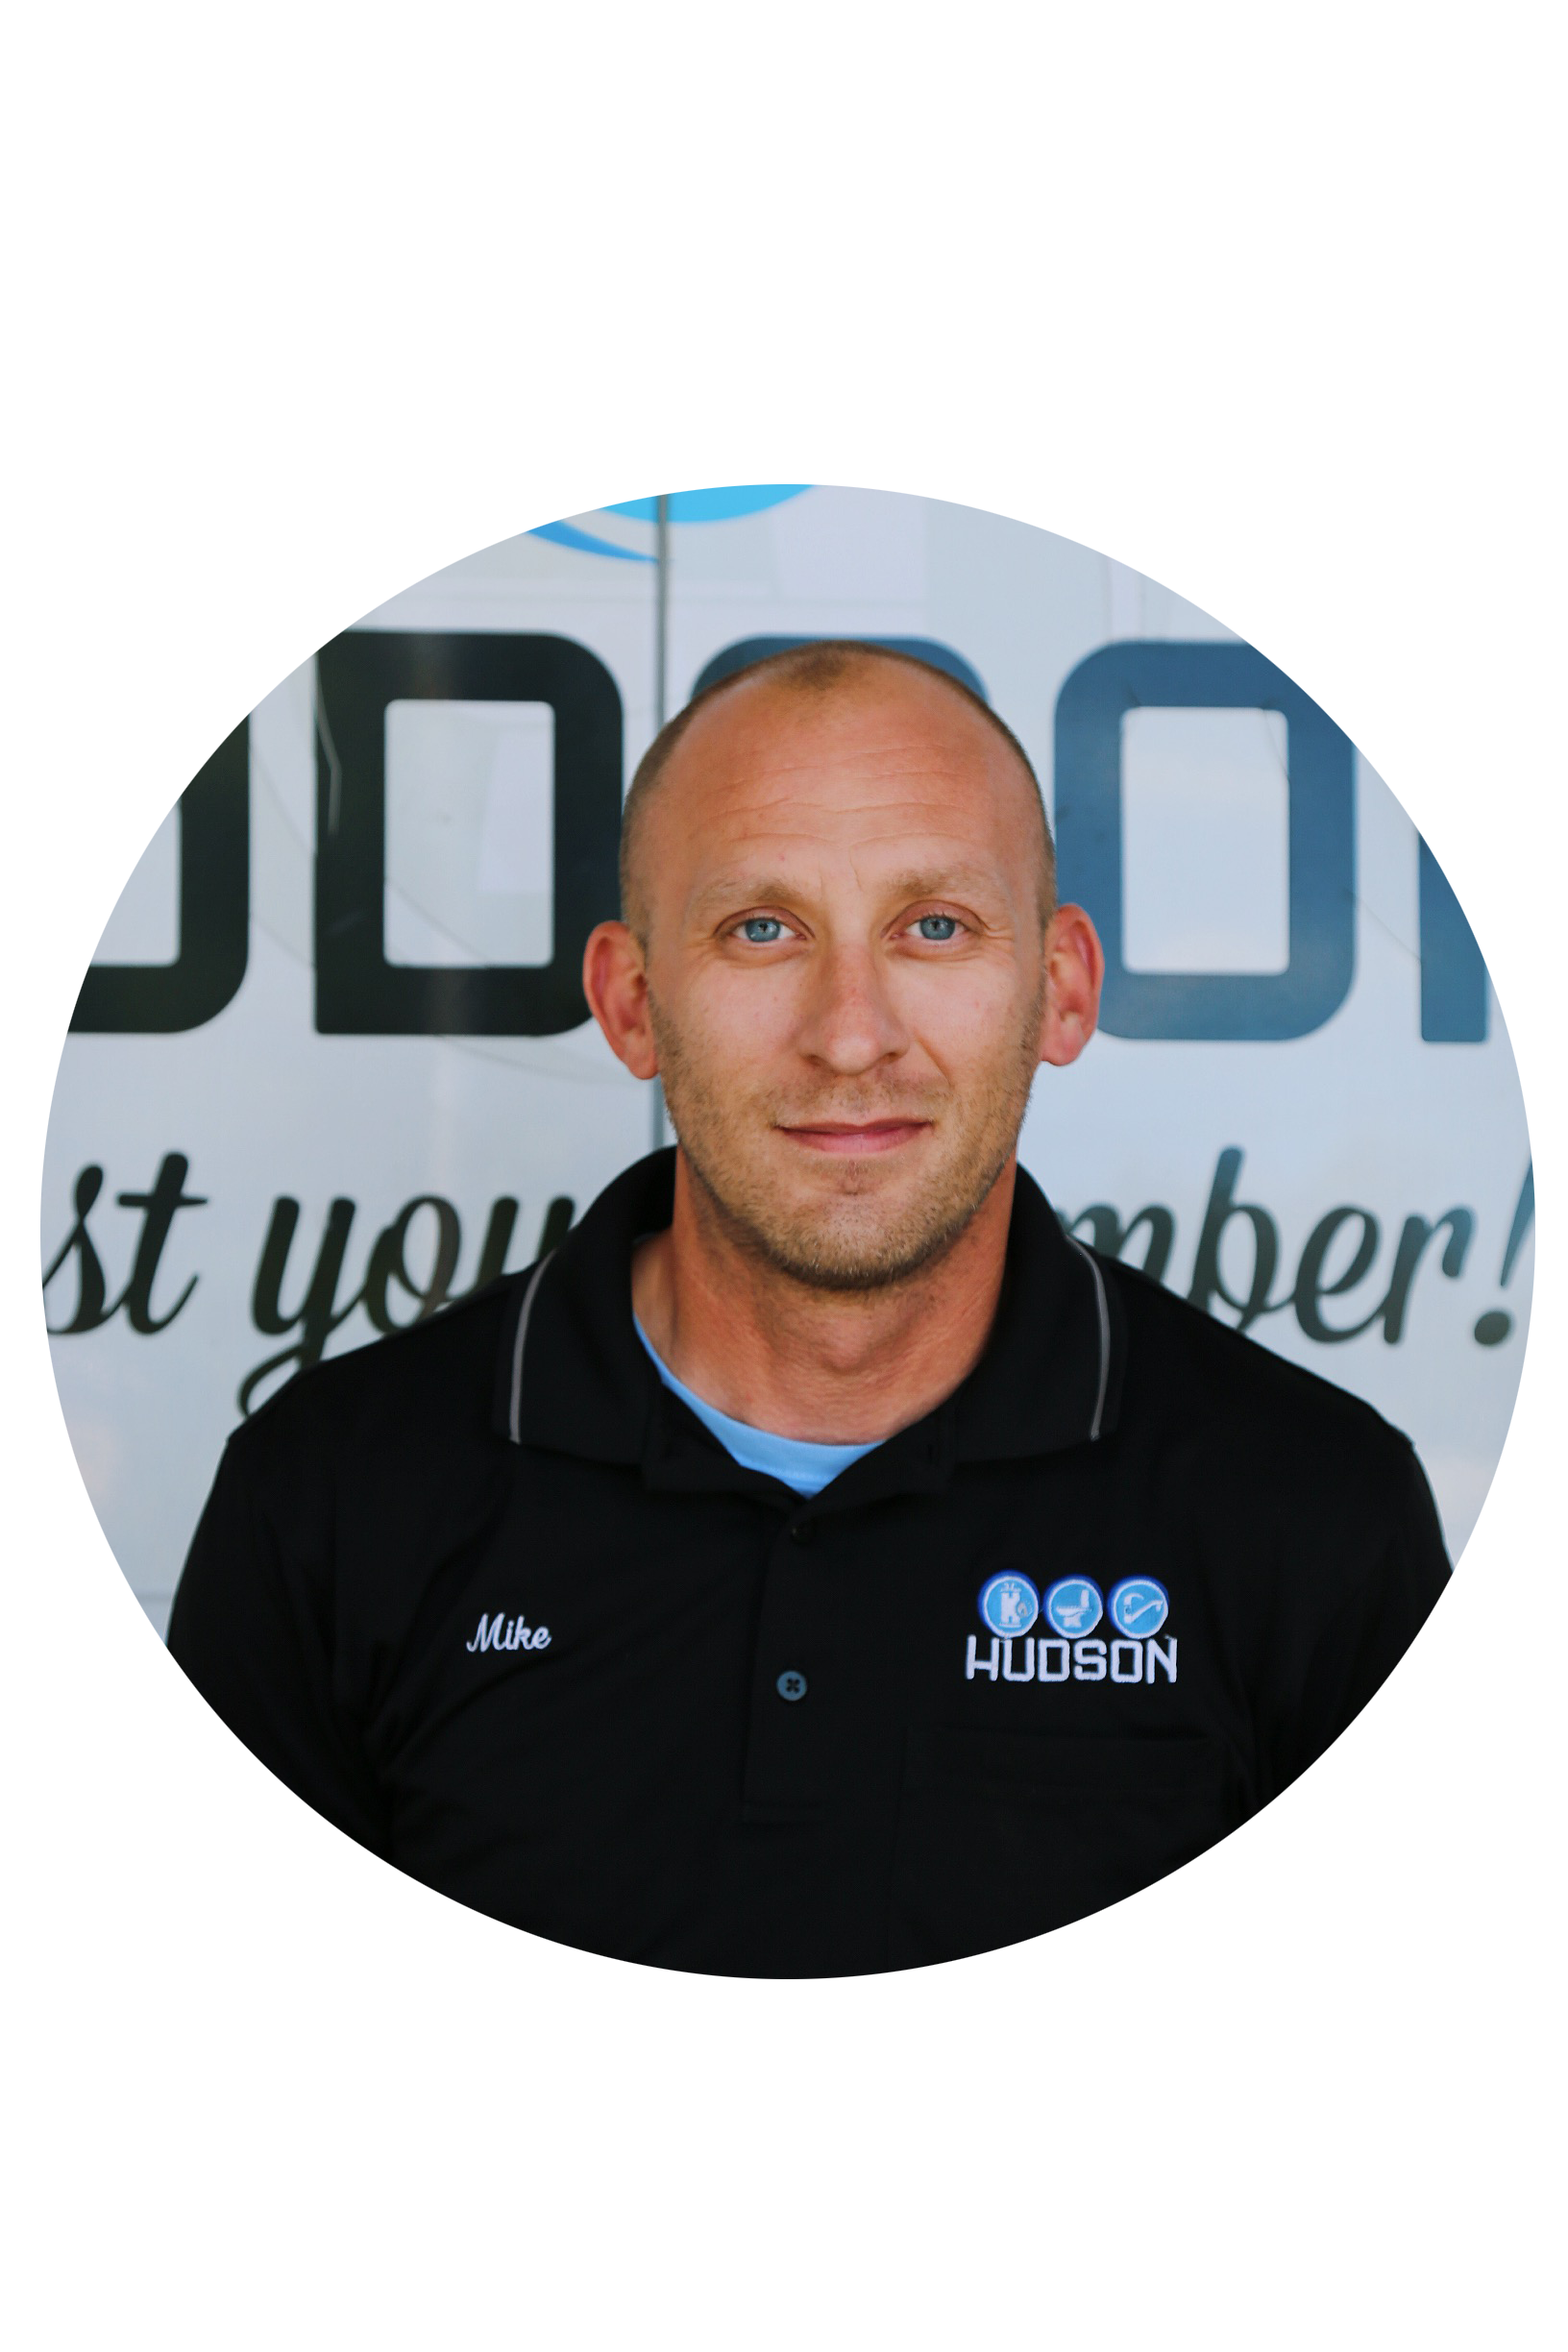 Mike Marlnee started with Hudson Plumbing in 2003 and is now the lead service manager.